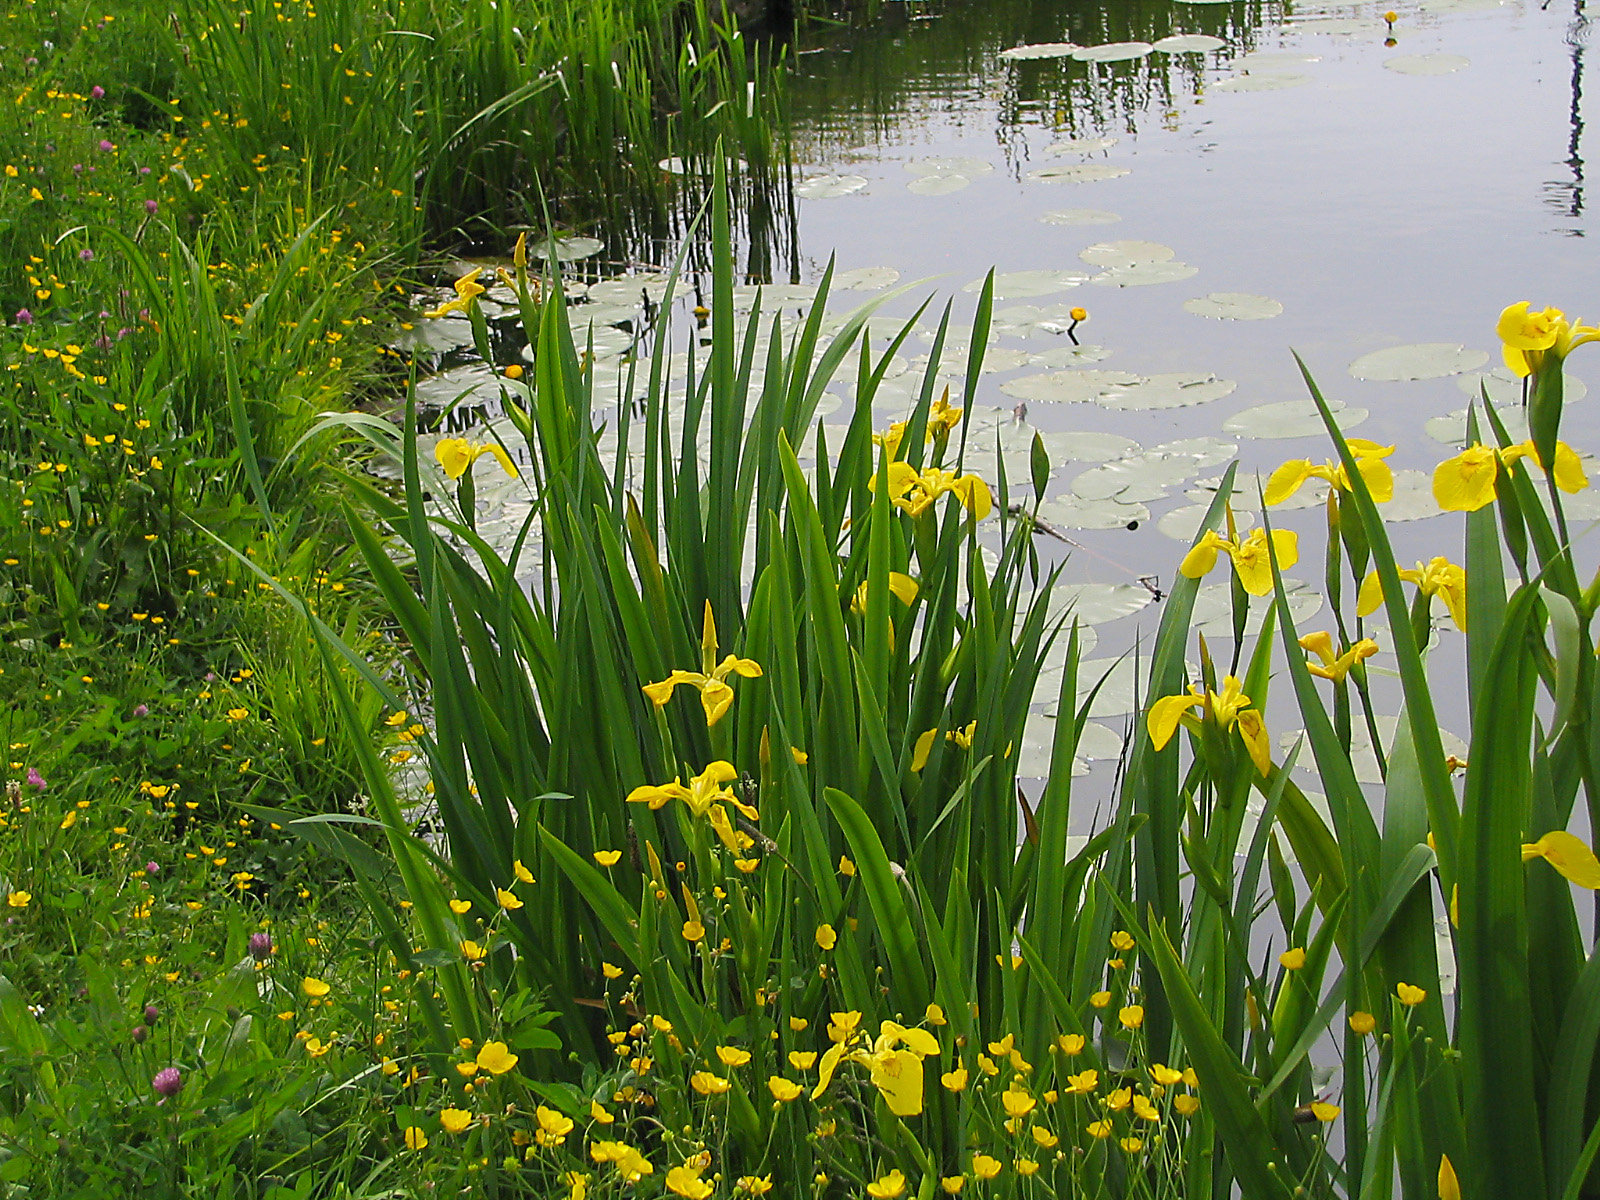 Pond plants best pond plants pond stars uk dorset for Best pond plants for filtering